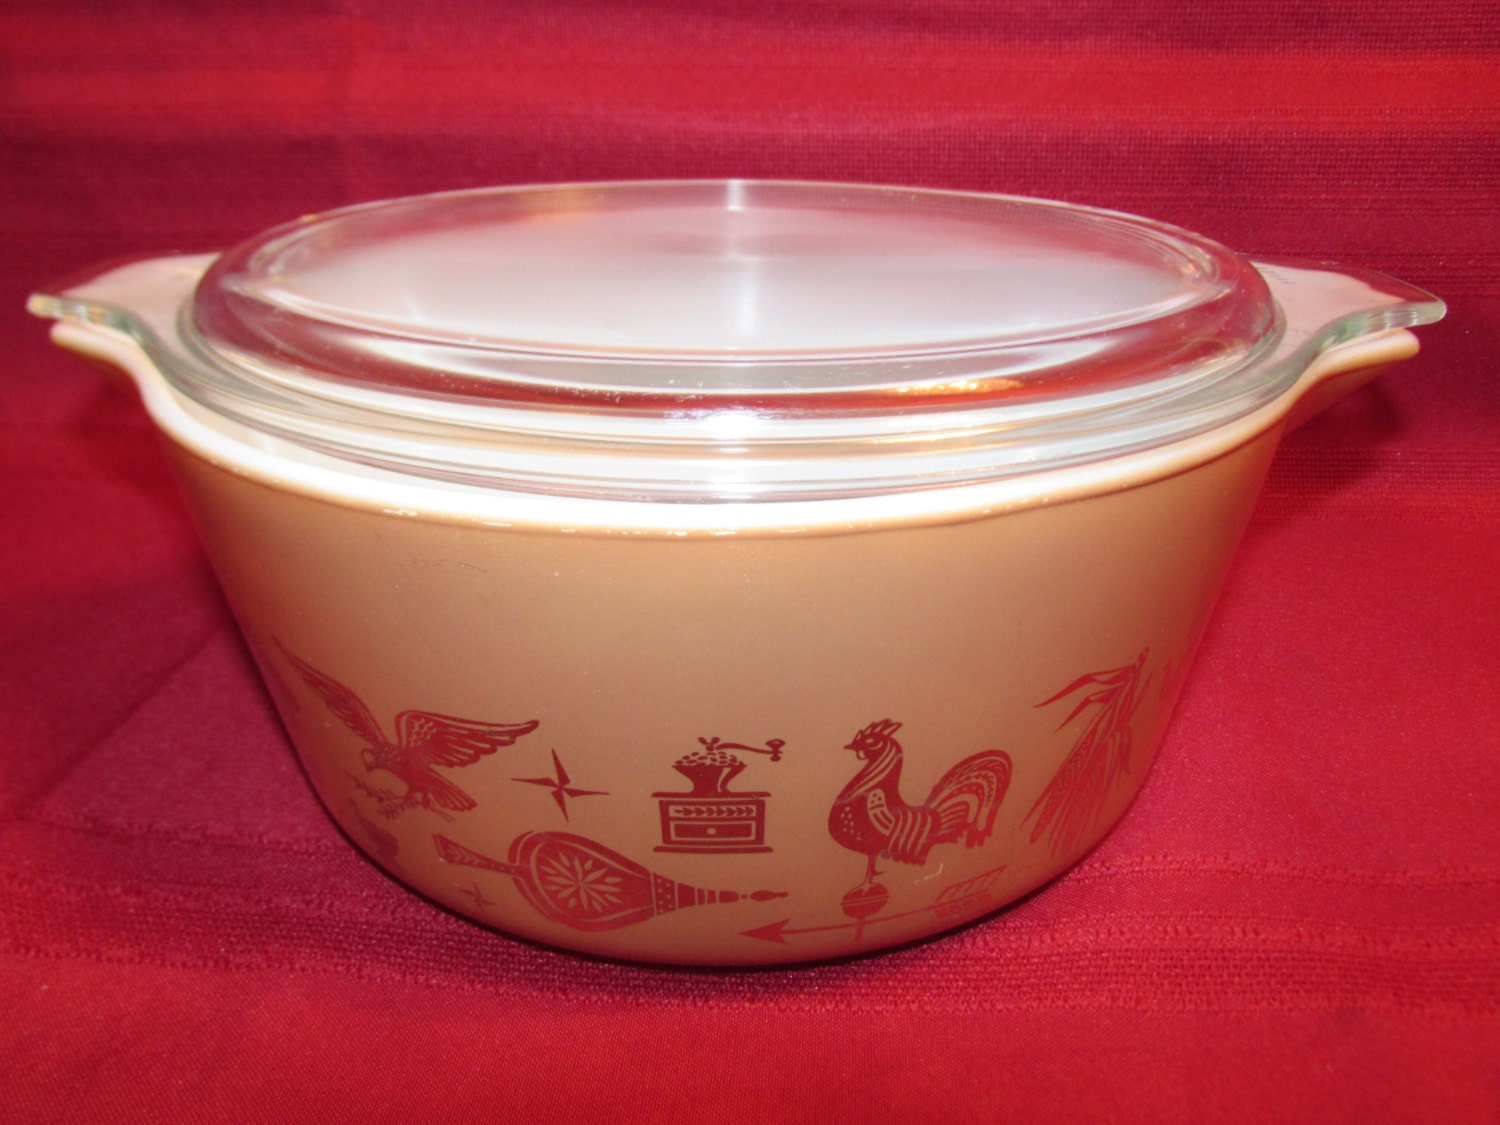 pyrex early american casserole baking dish 475b with lid. Black Bedroom Furniture Sets. Home Design Ideas